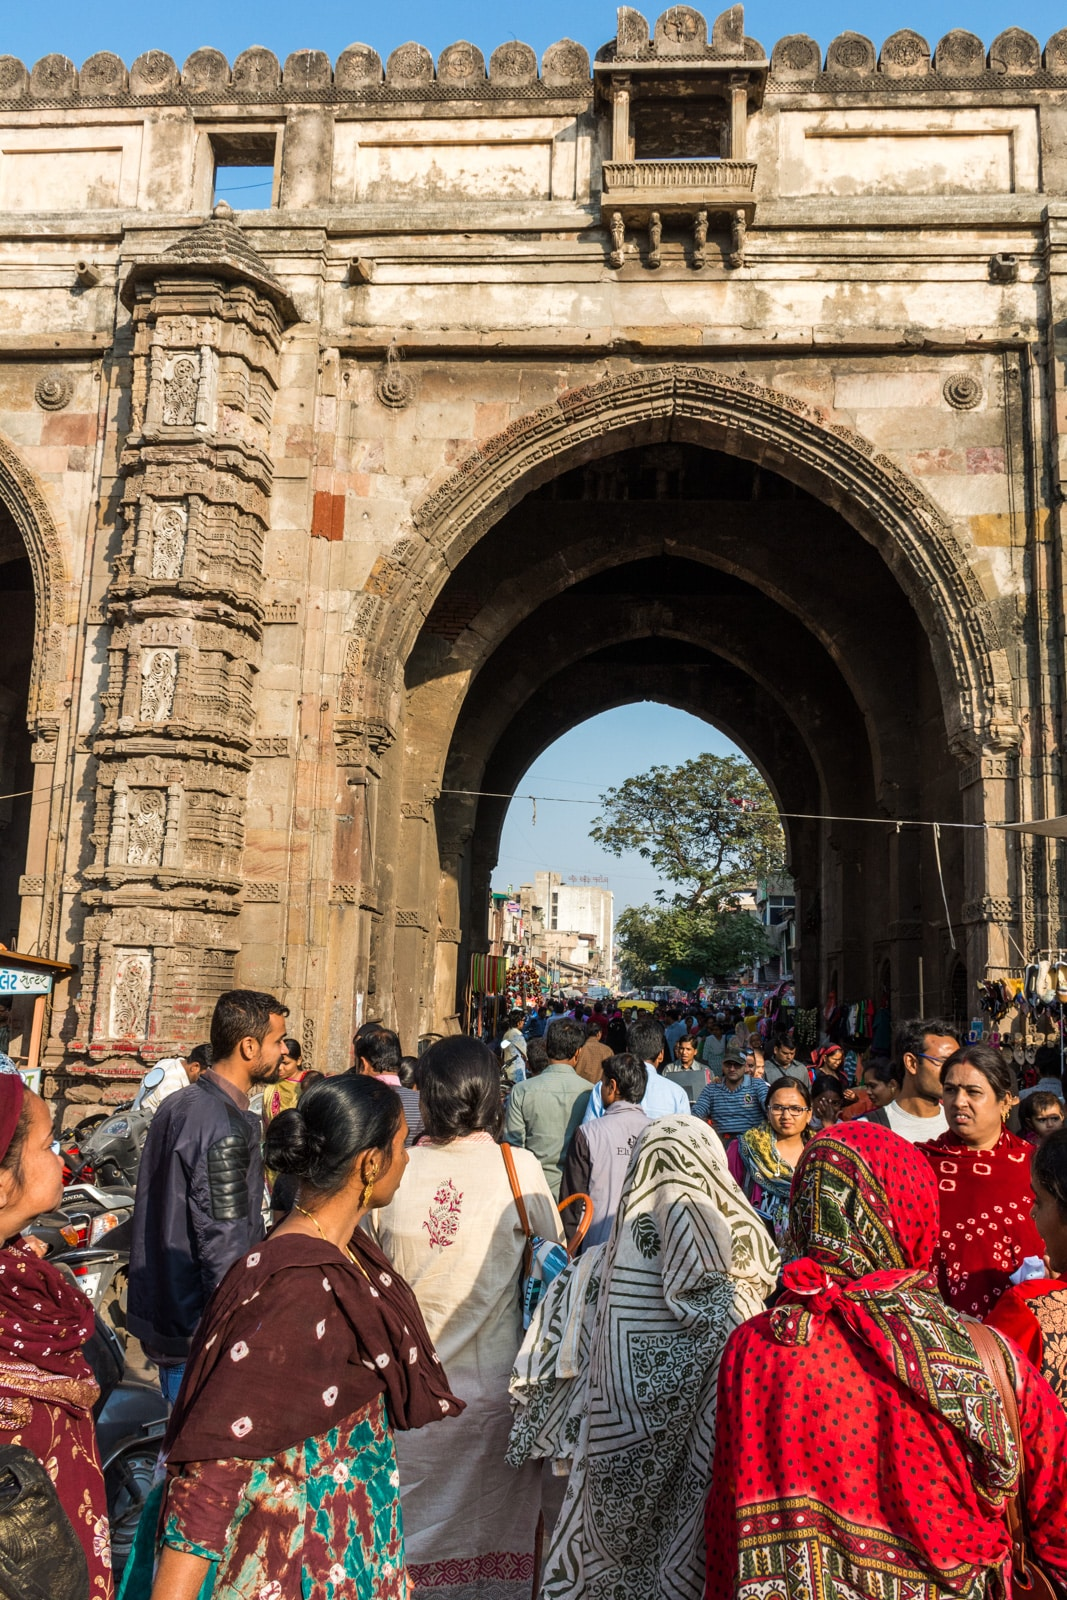 A busy crowd walks through an ornate stone archway over a market street in Ahmedabad, Gujarat state, India, the country's only UNESCO World Heritage city.